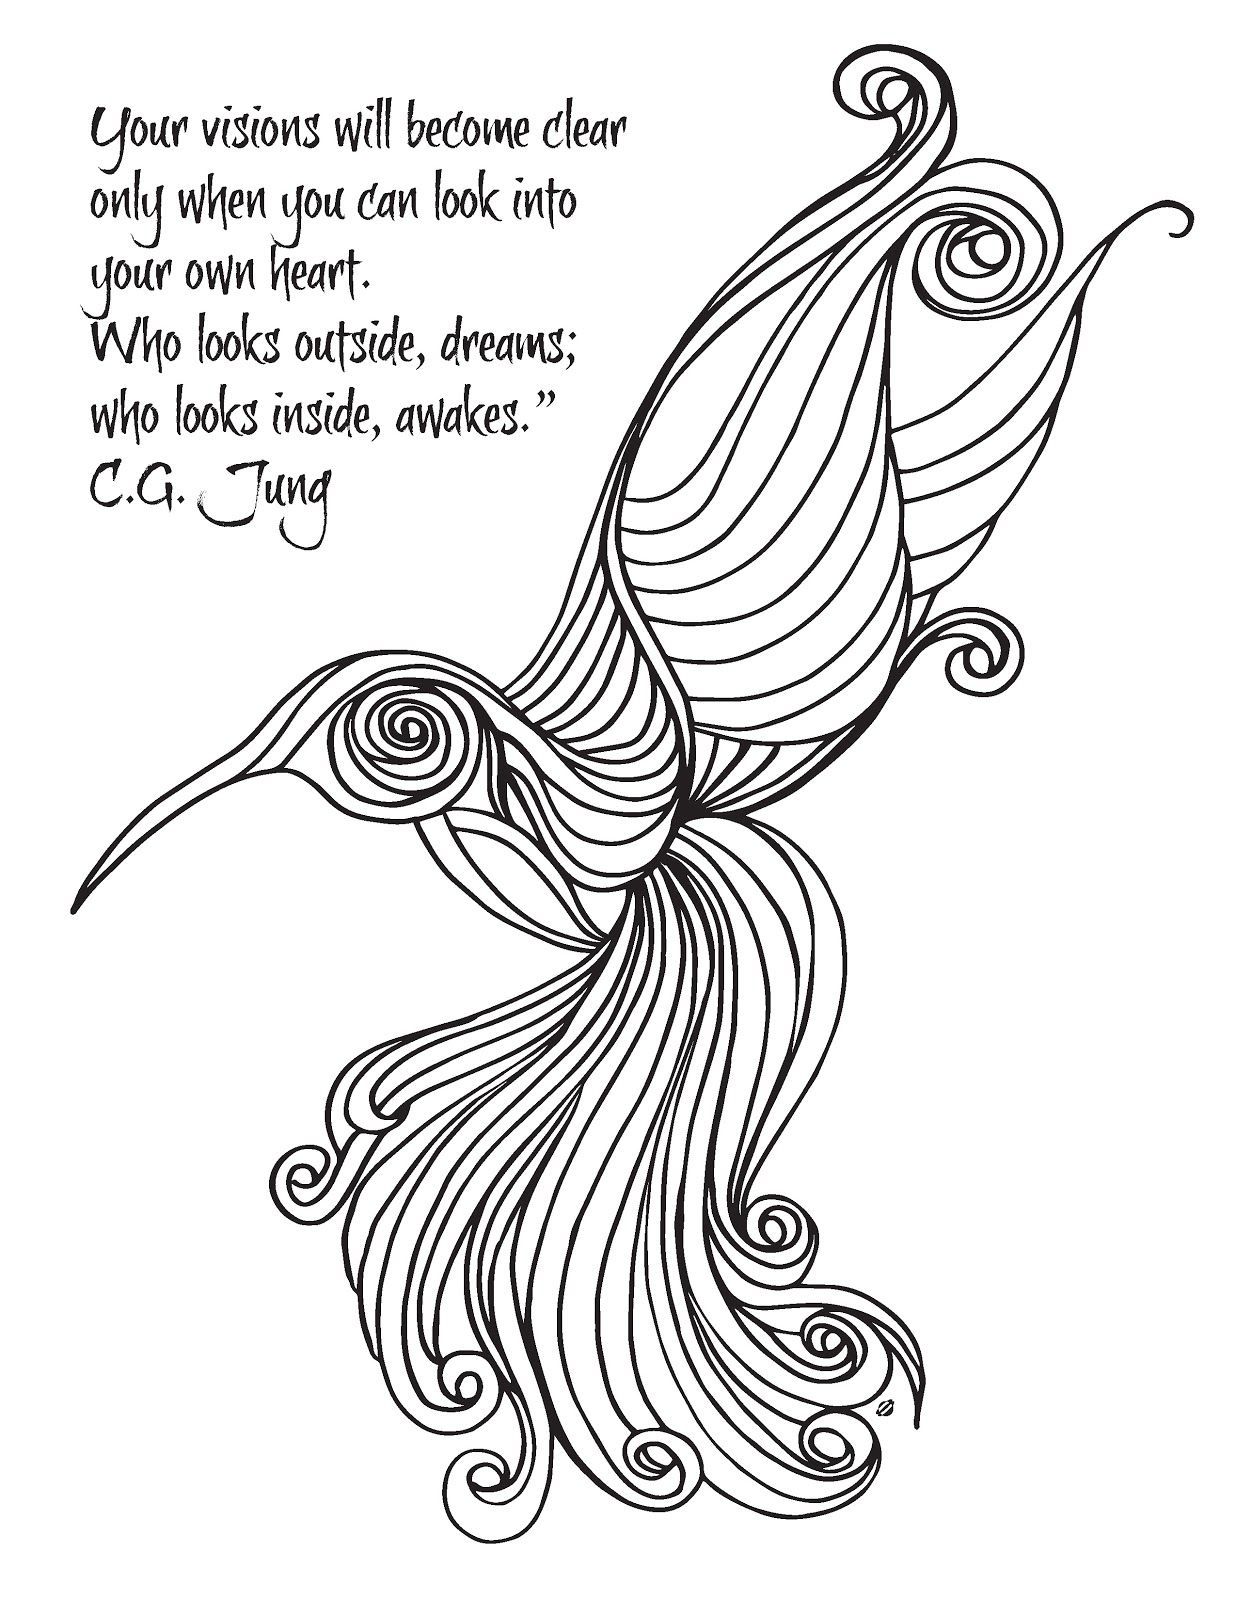 Lucrative image regarding free printable quote coloring pages for adults